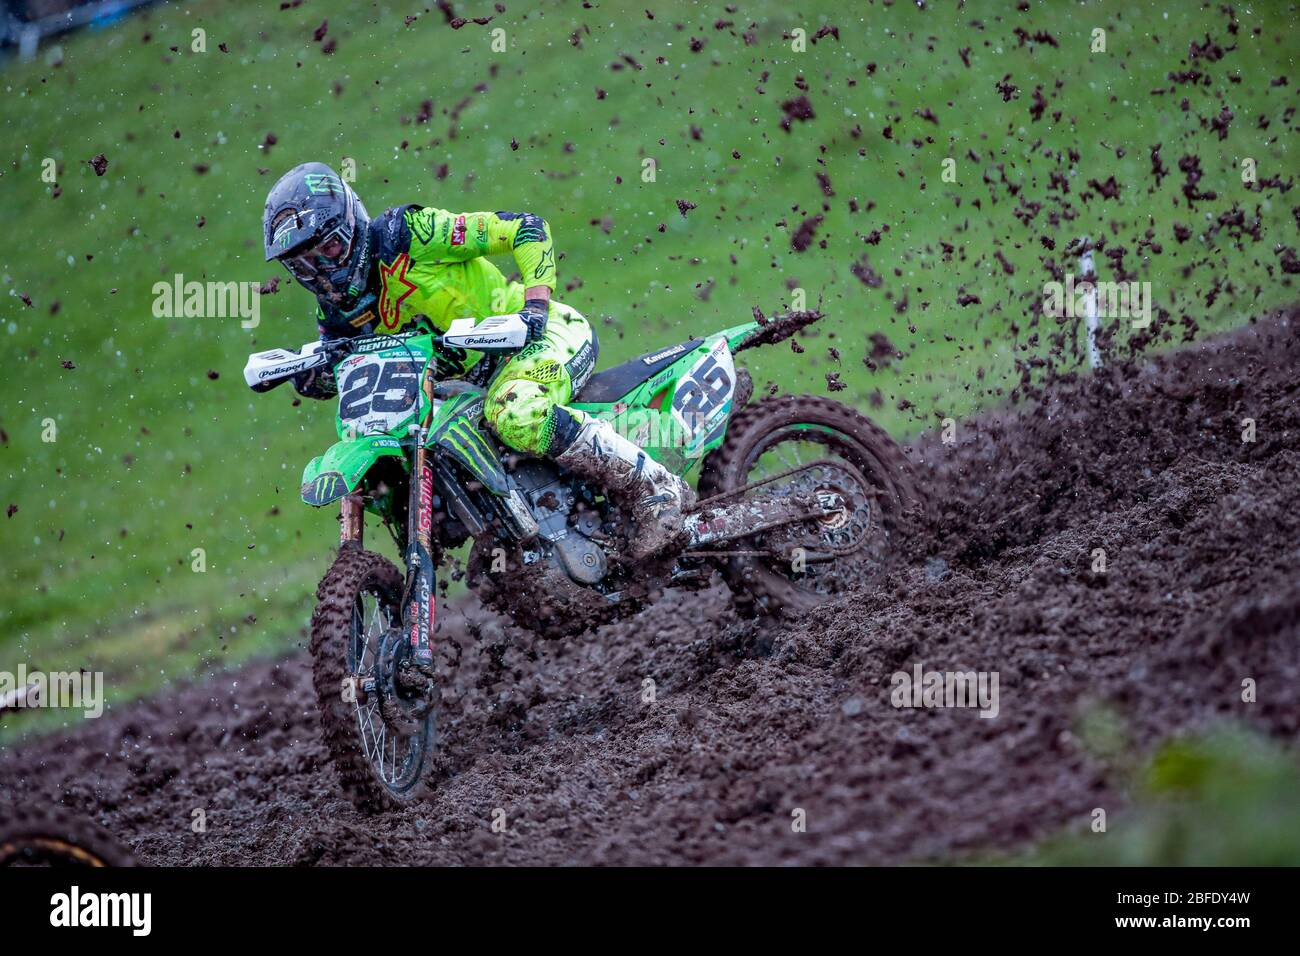 Winchester, Italy. 1st Mar, 2020. winchester, Italy, 01 Mar 2020, Clement Desalle (BEL) Team Kawasaki Factory Racing during - - Credit: LM/Davide Messora Credit: Davide Messora/LPS/ZUMA Wire/Alamy Live News Stock Photo